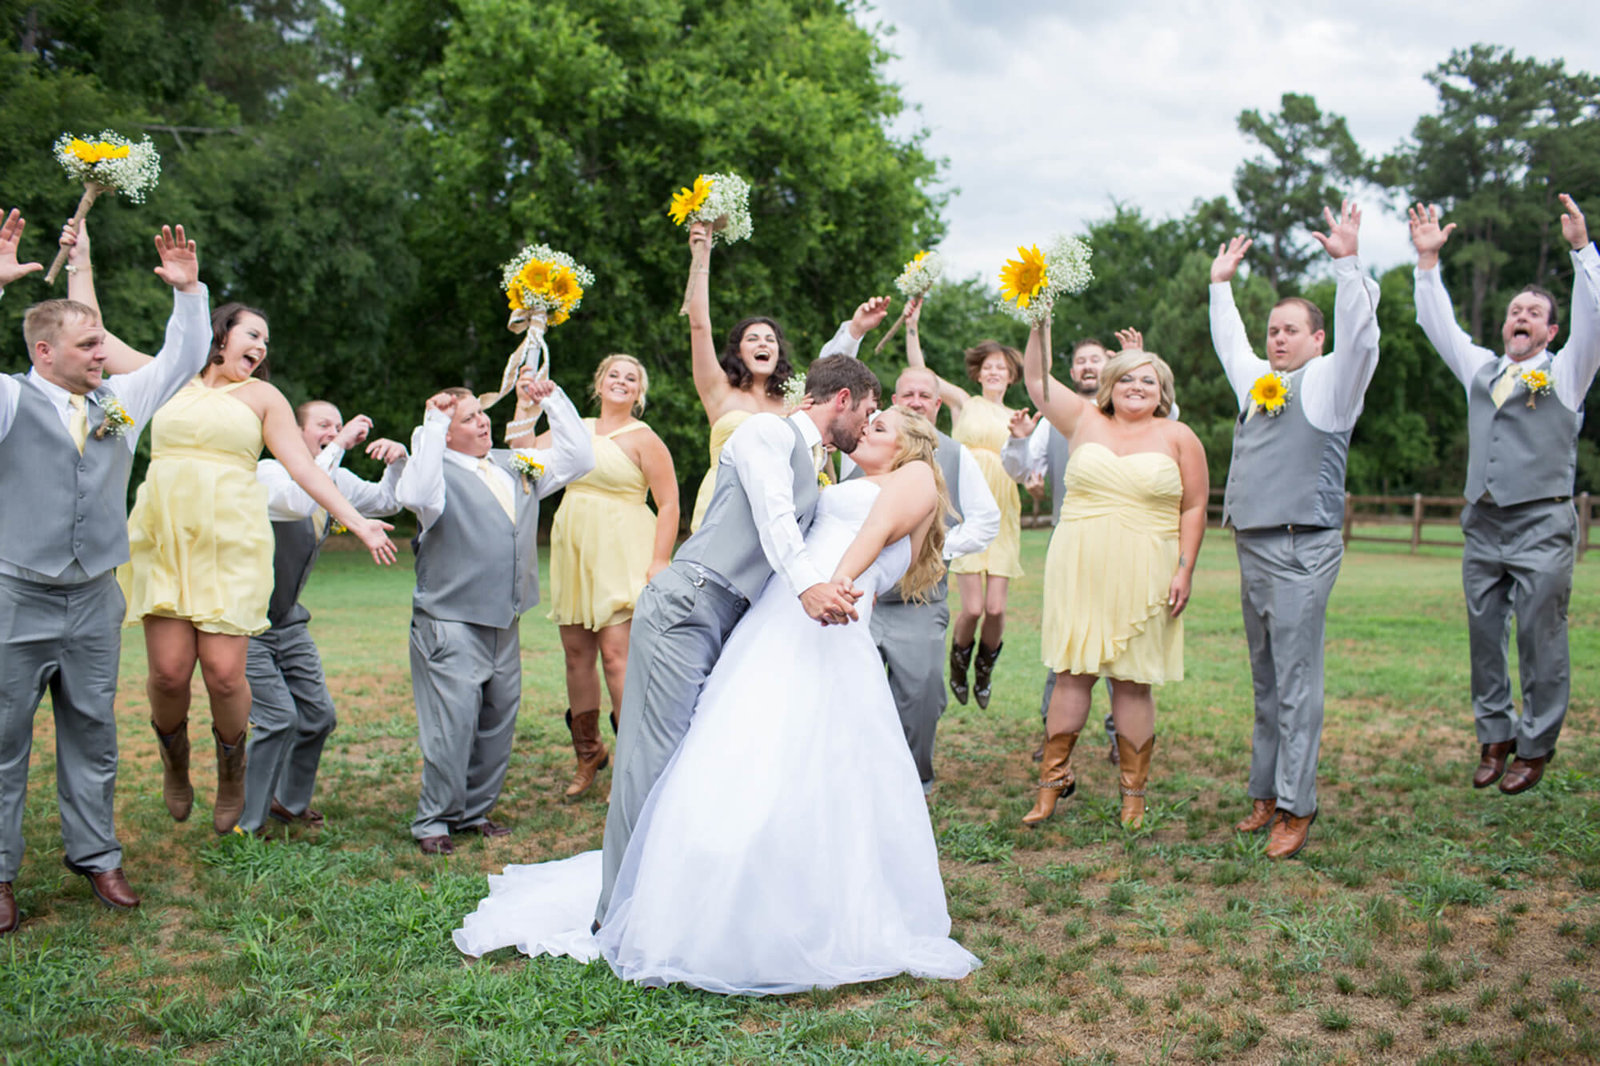 bride and groom kiss bridal party jumping